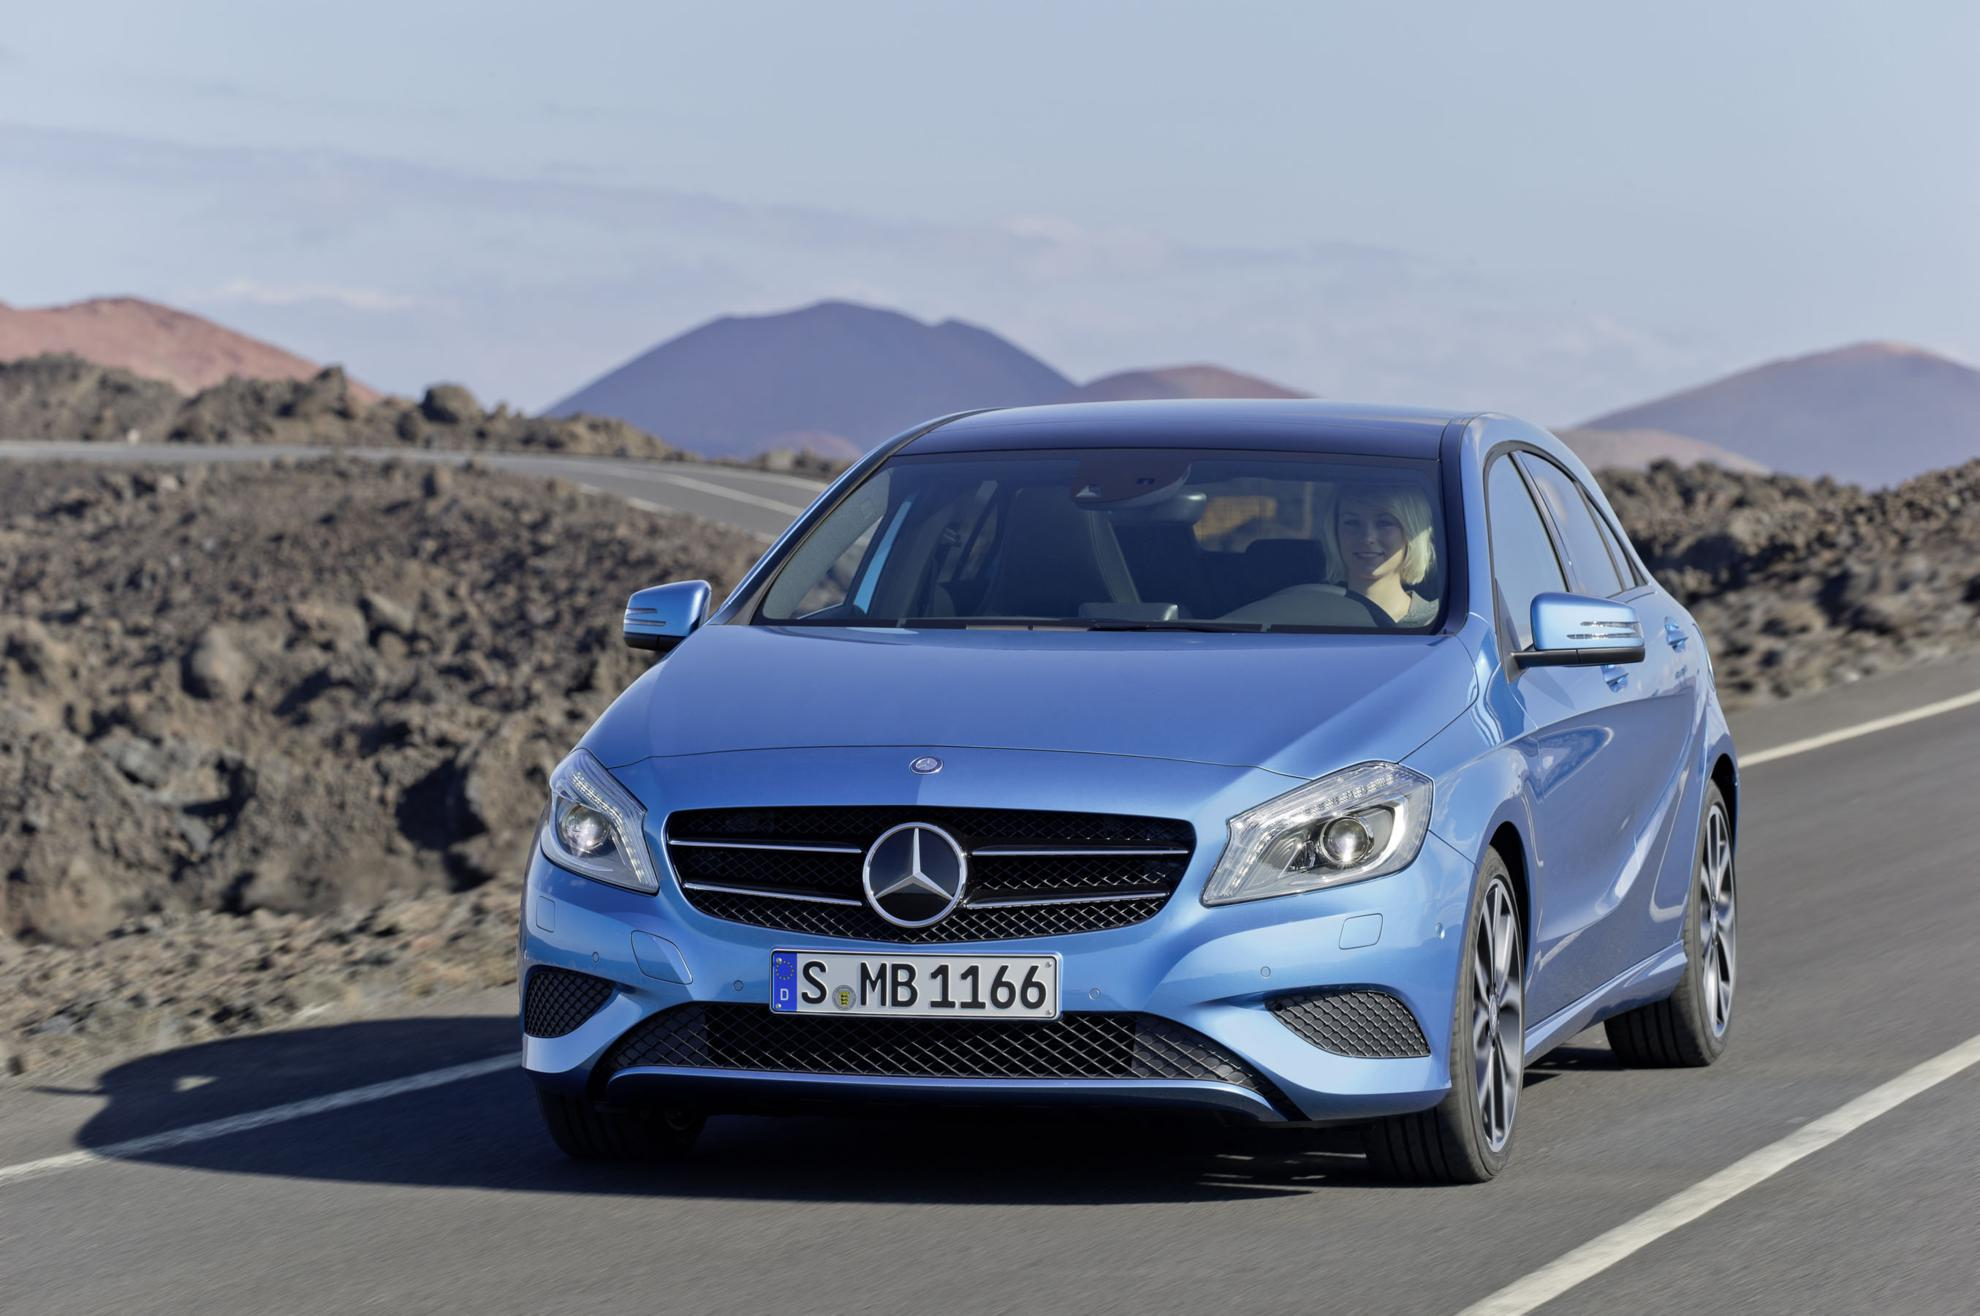 Mercedes Benz A-Class Diesel Engines